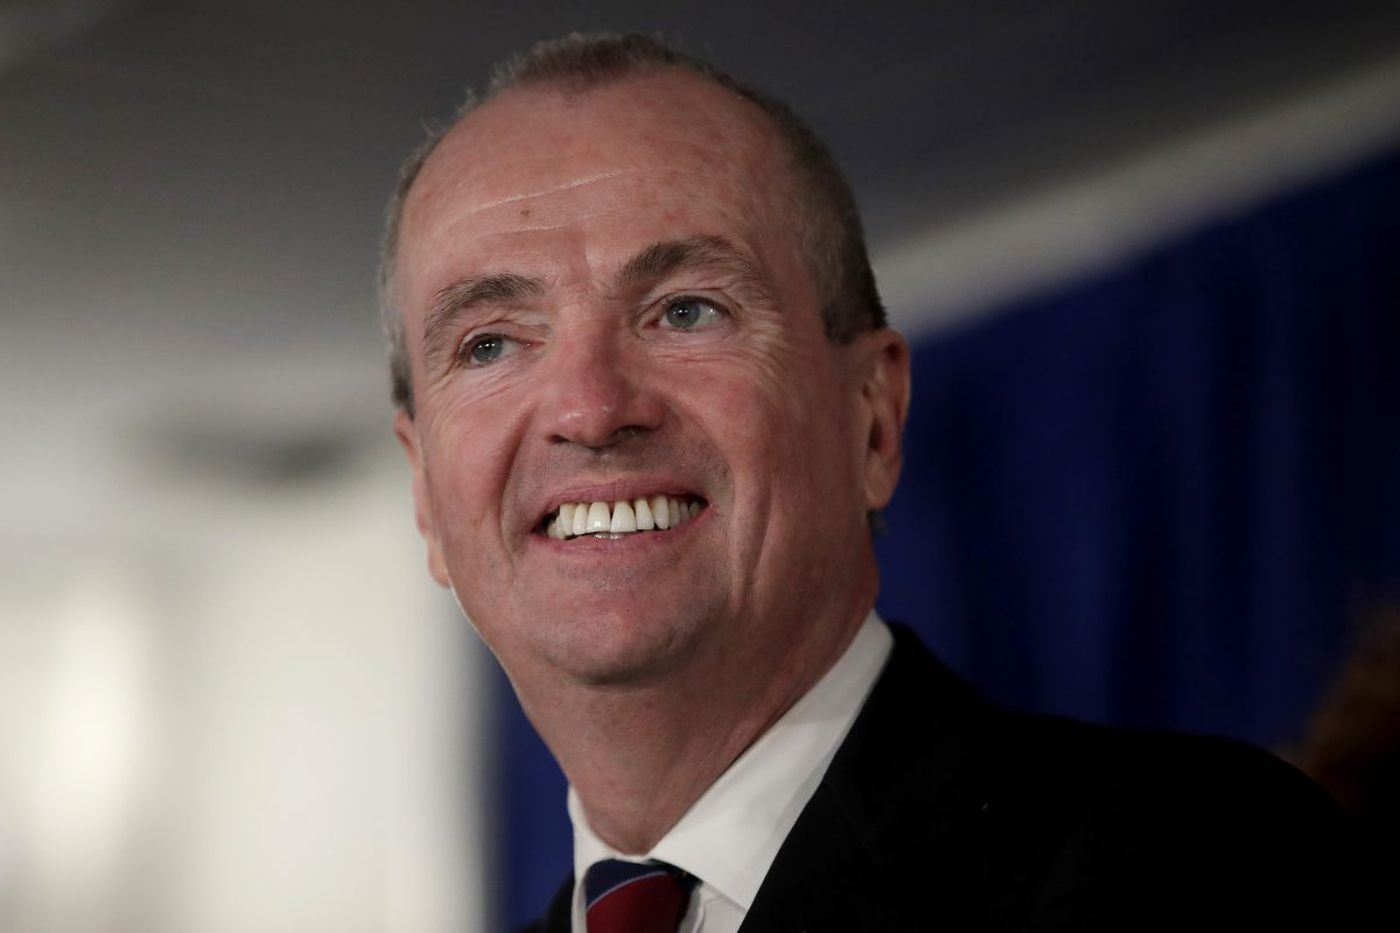 New Jersey Gov. Murphy: JCP&L's response to storm outages is `embarrassing and unacceptable'